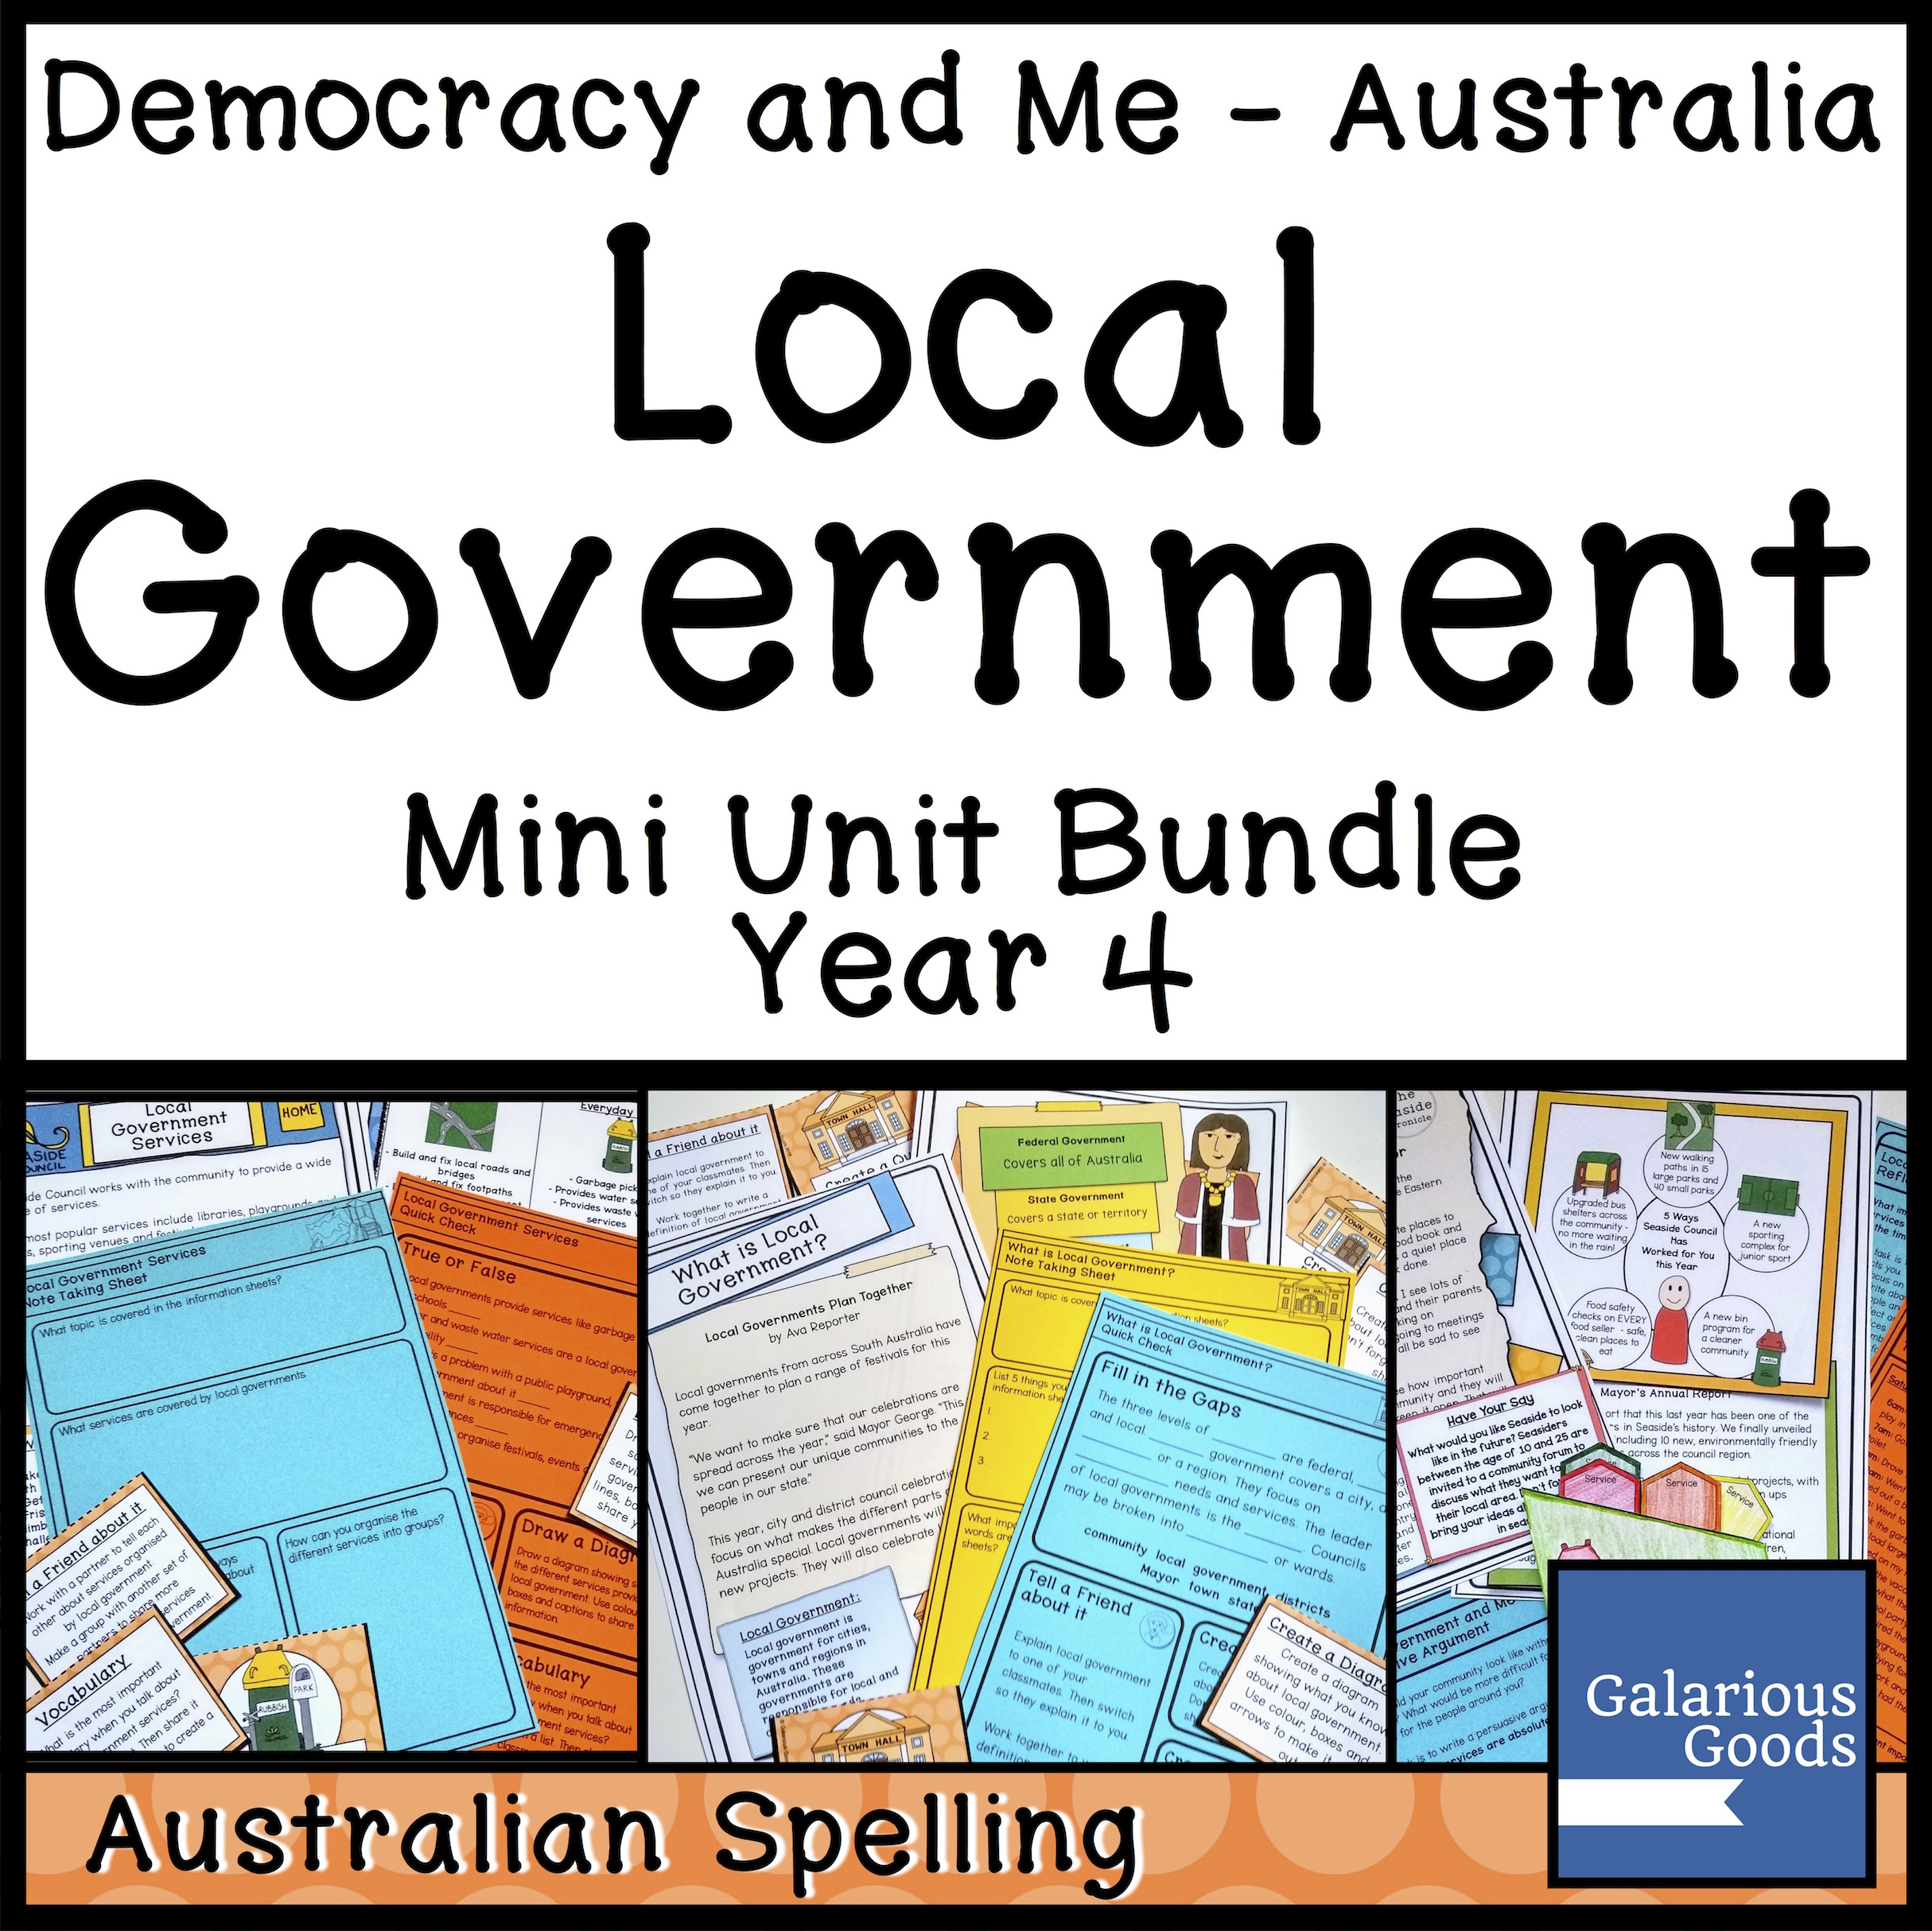 cover local government mini unit.jpg